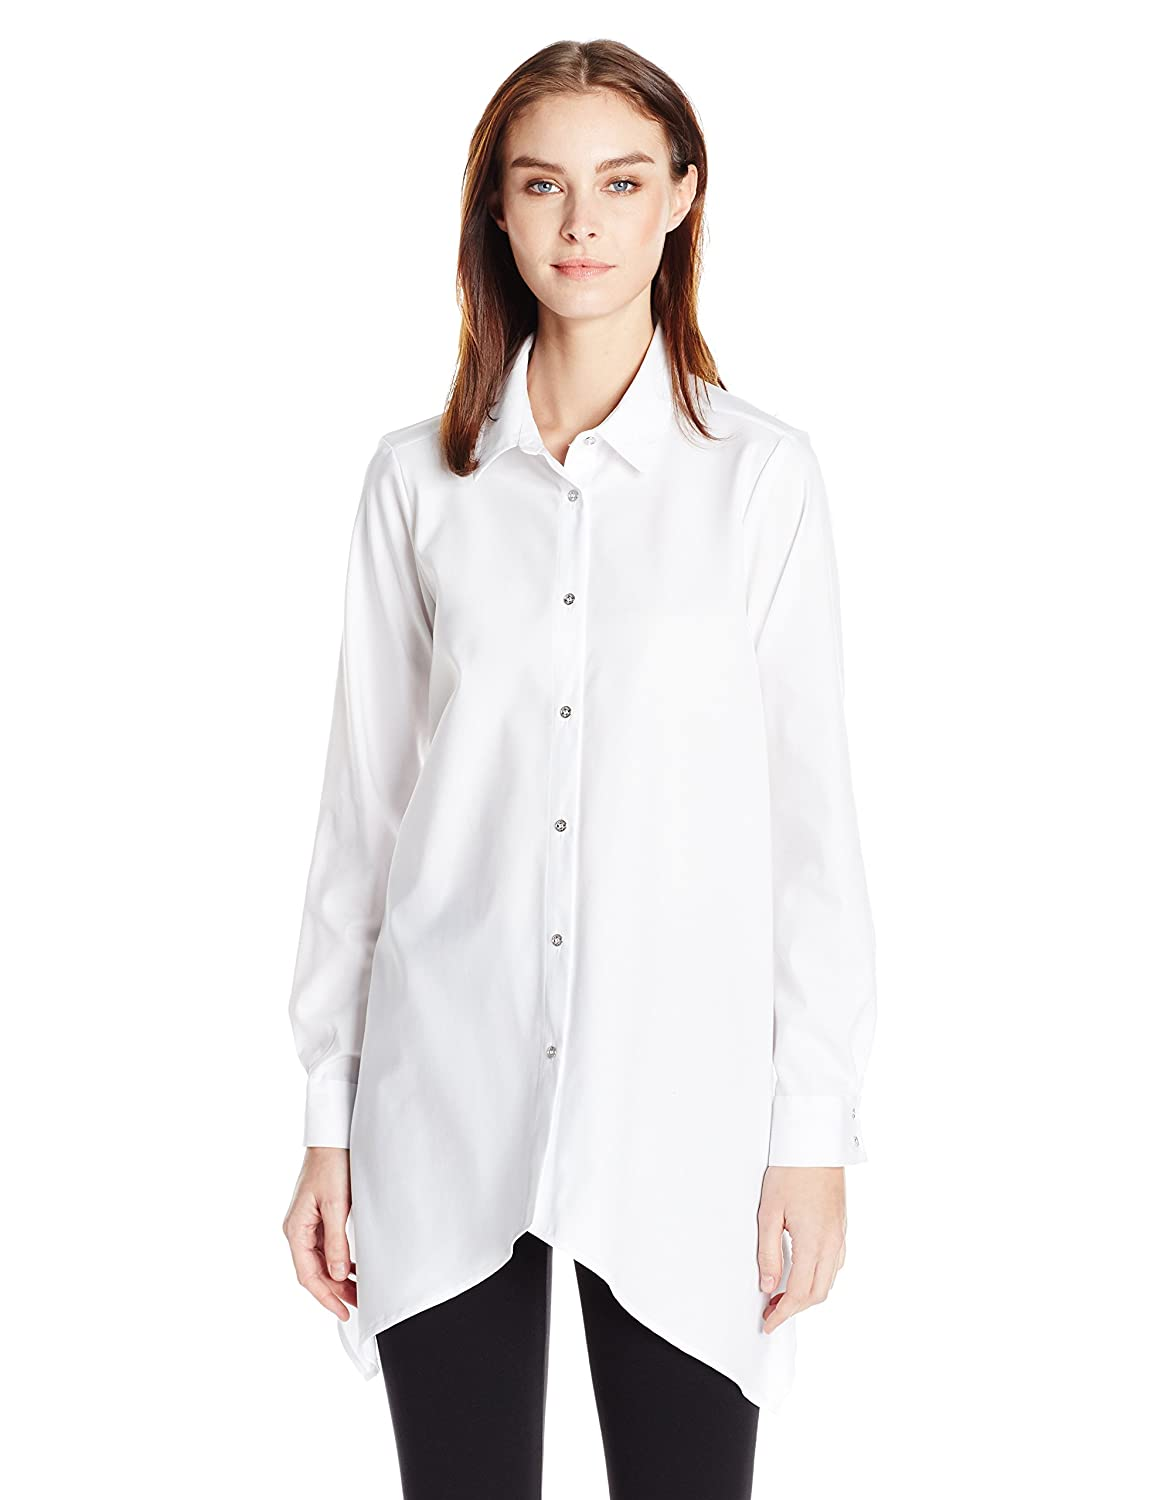 Calvin Klein Women's Shirting W/ Sharkbite